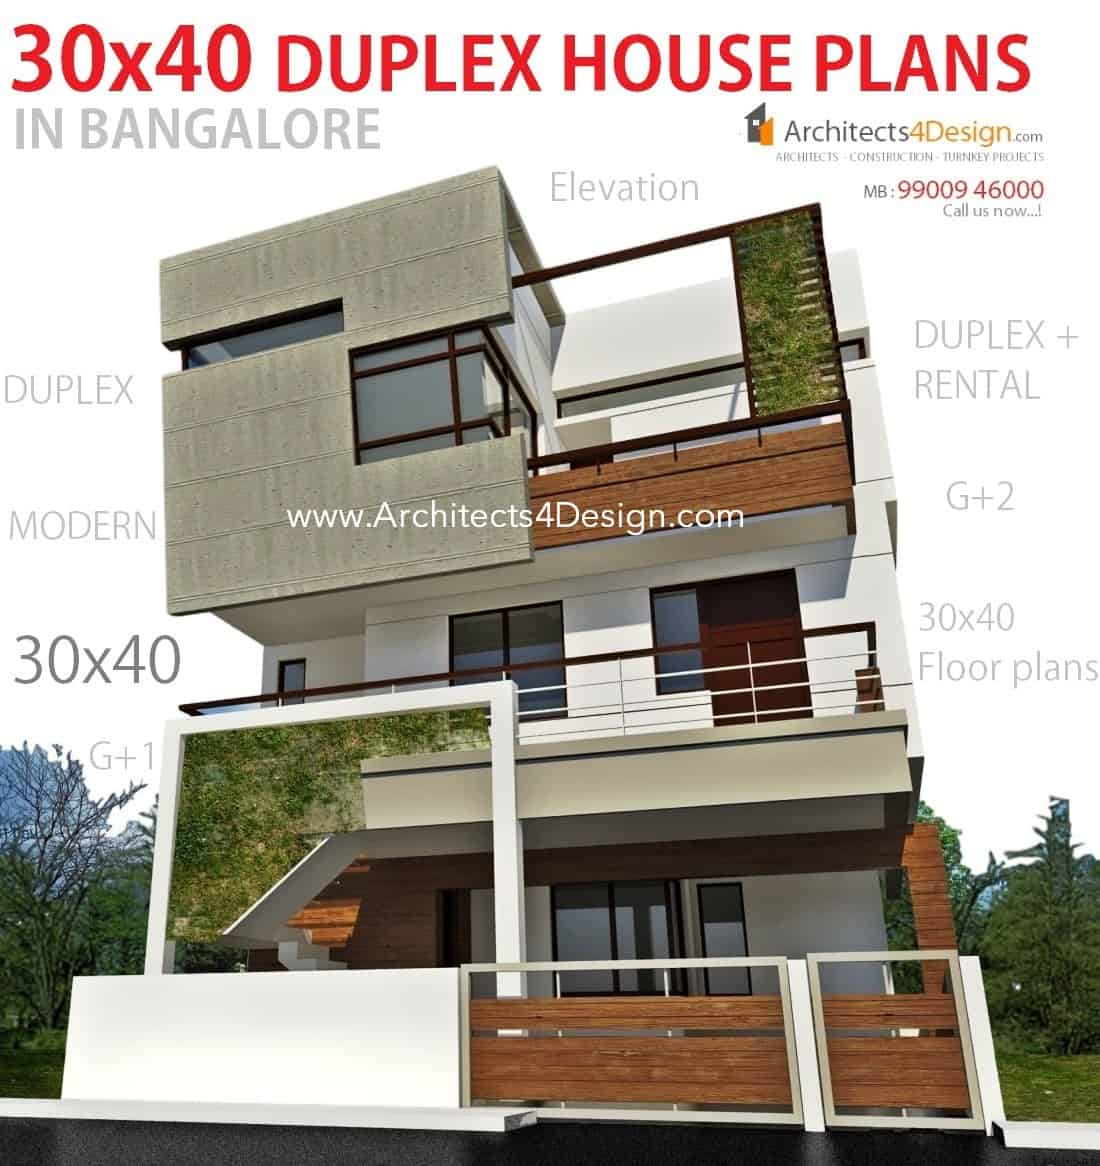 30x40 house plans in bangalore for g 1 g 2 g 3 g 4 floors for Best site for house plans